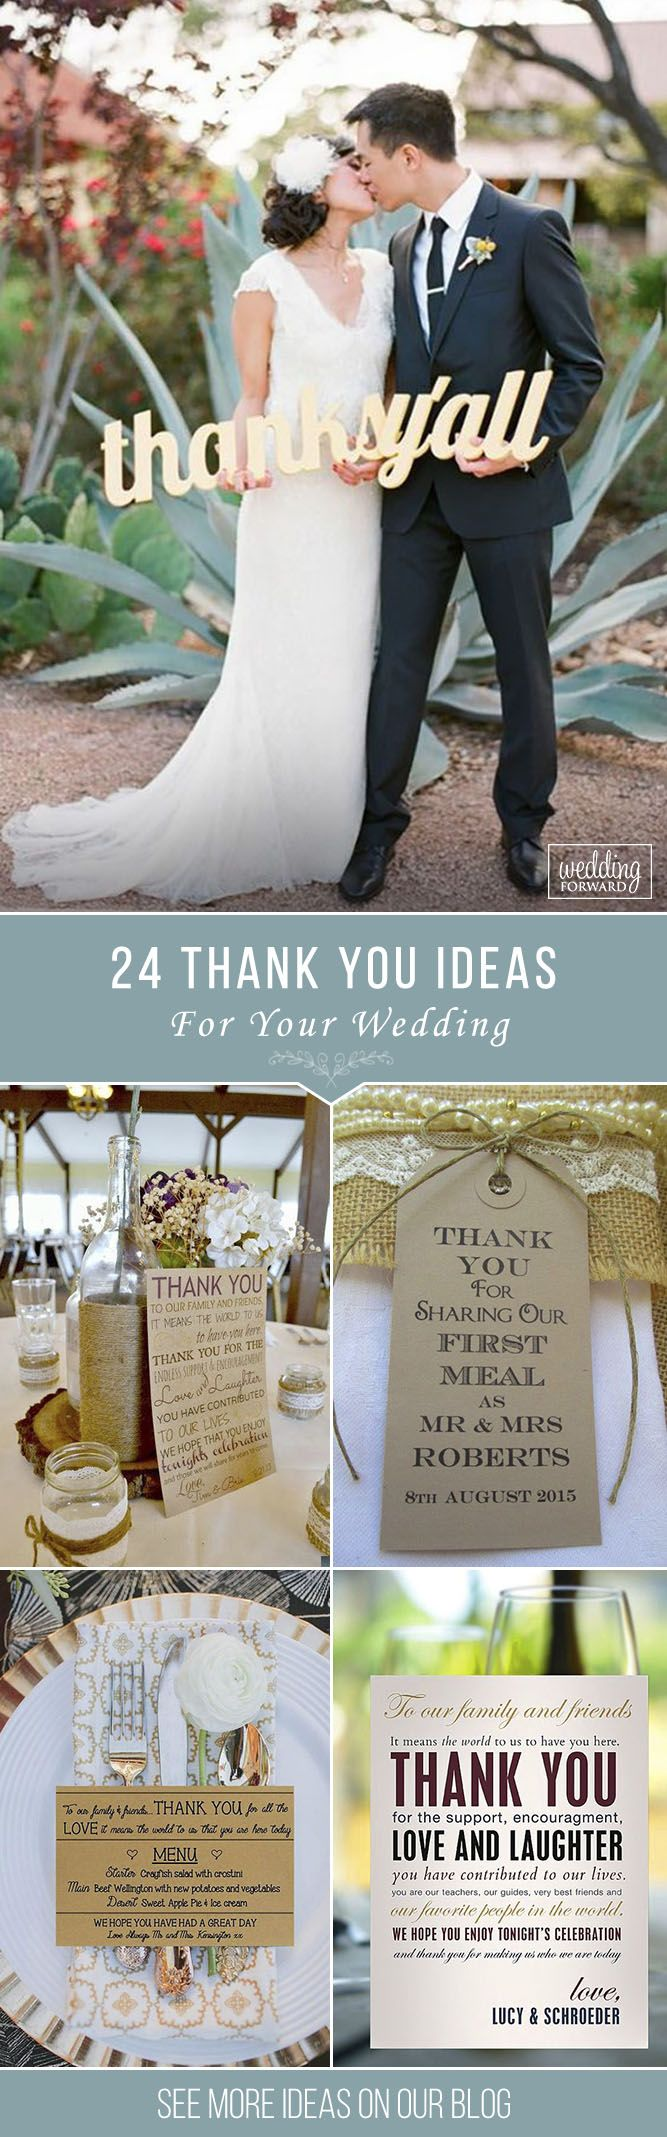 Best Wedding Photography Images On Pinterest Marriage